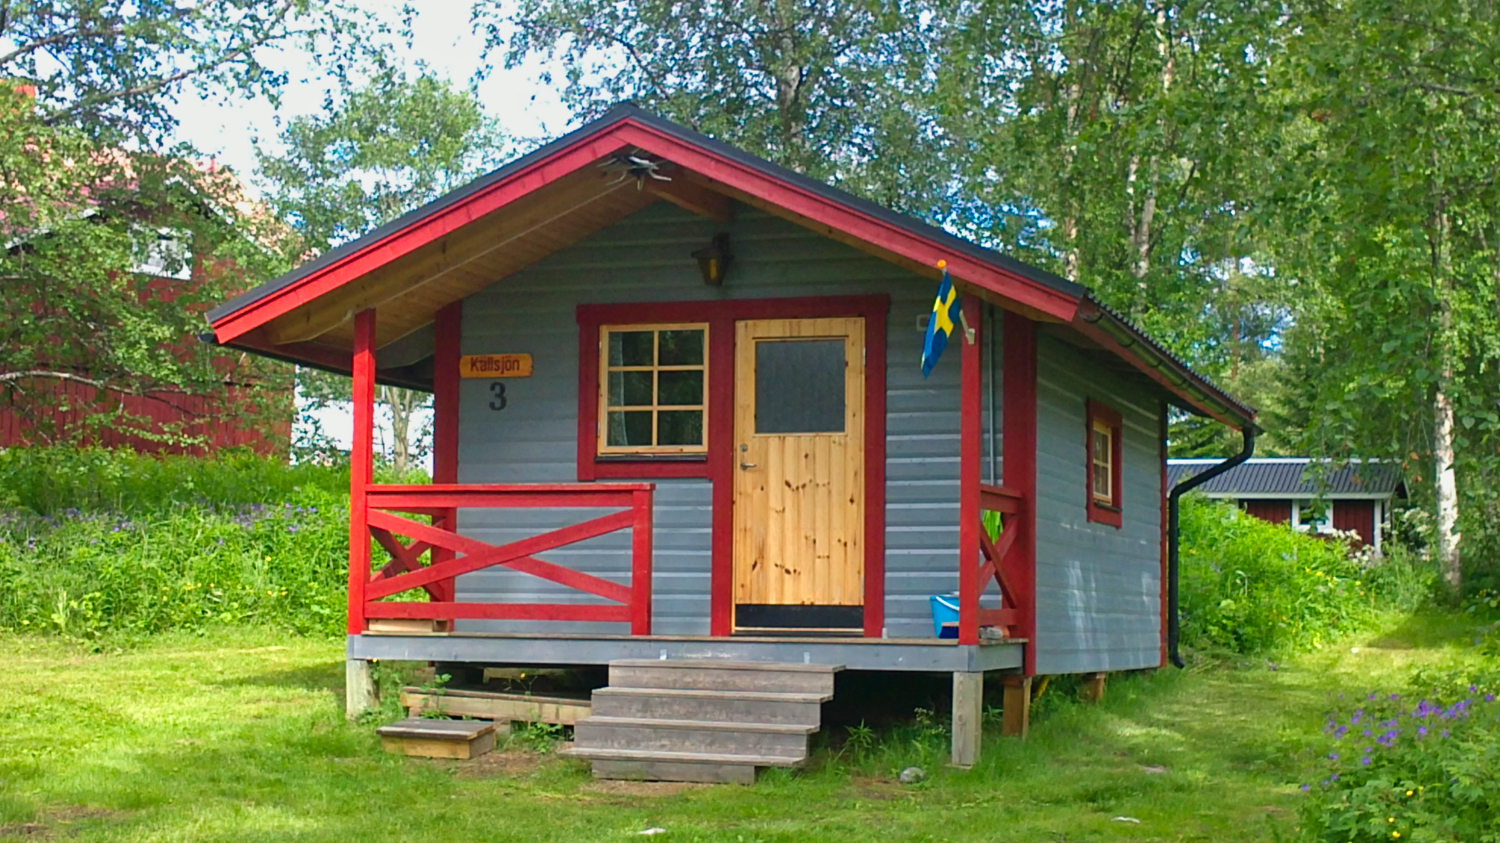 Campingstuga - Camping cottage